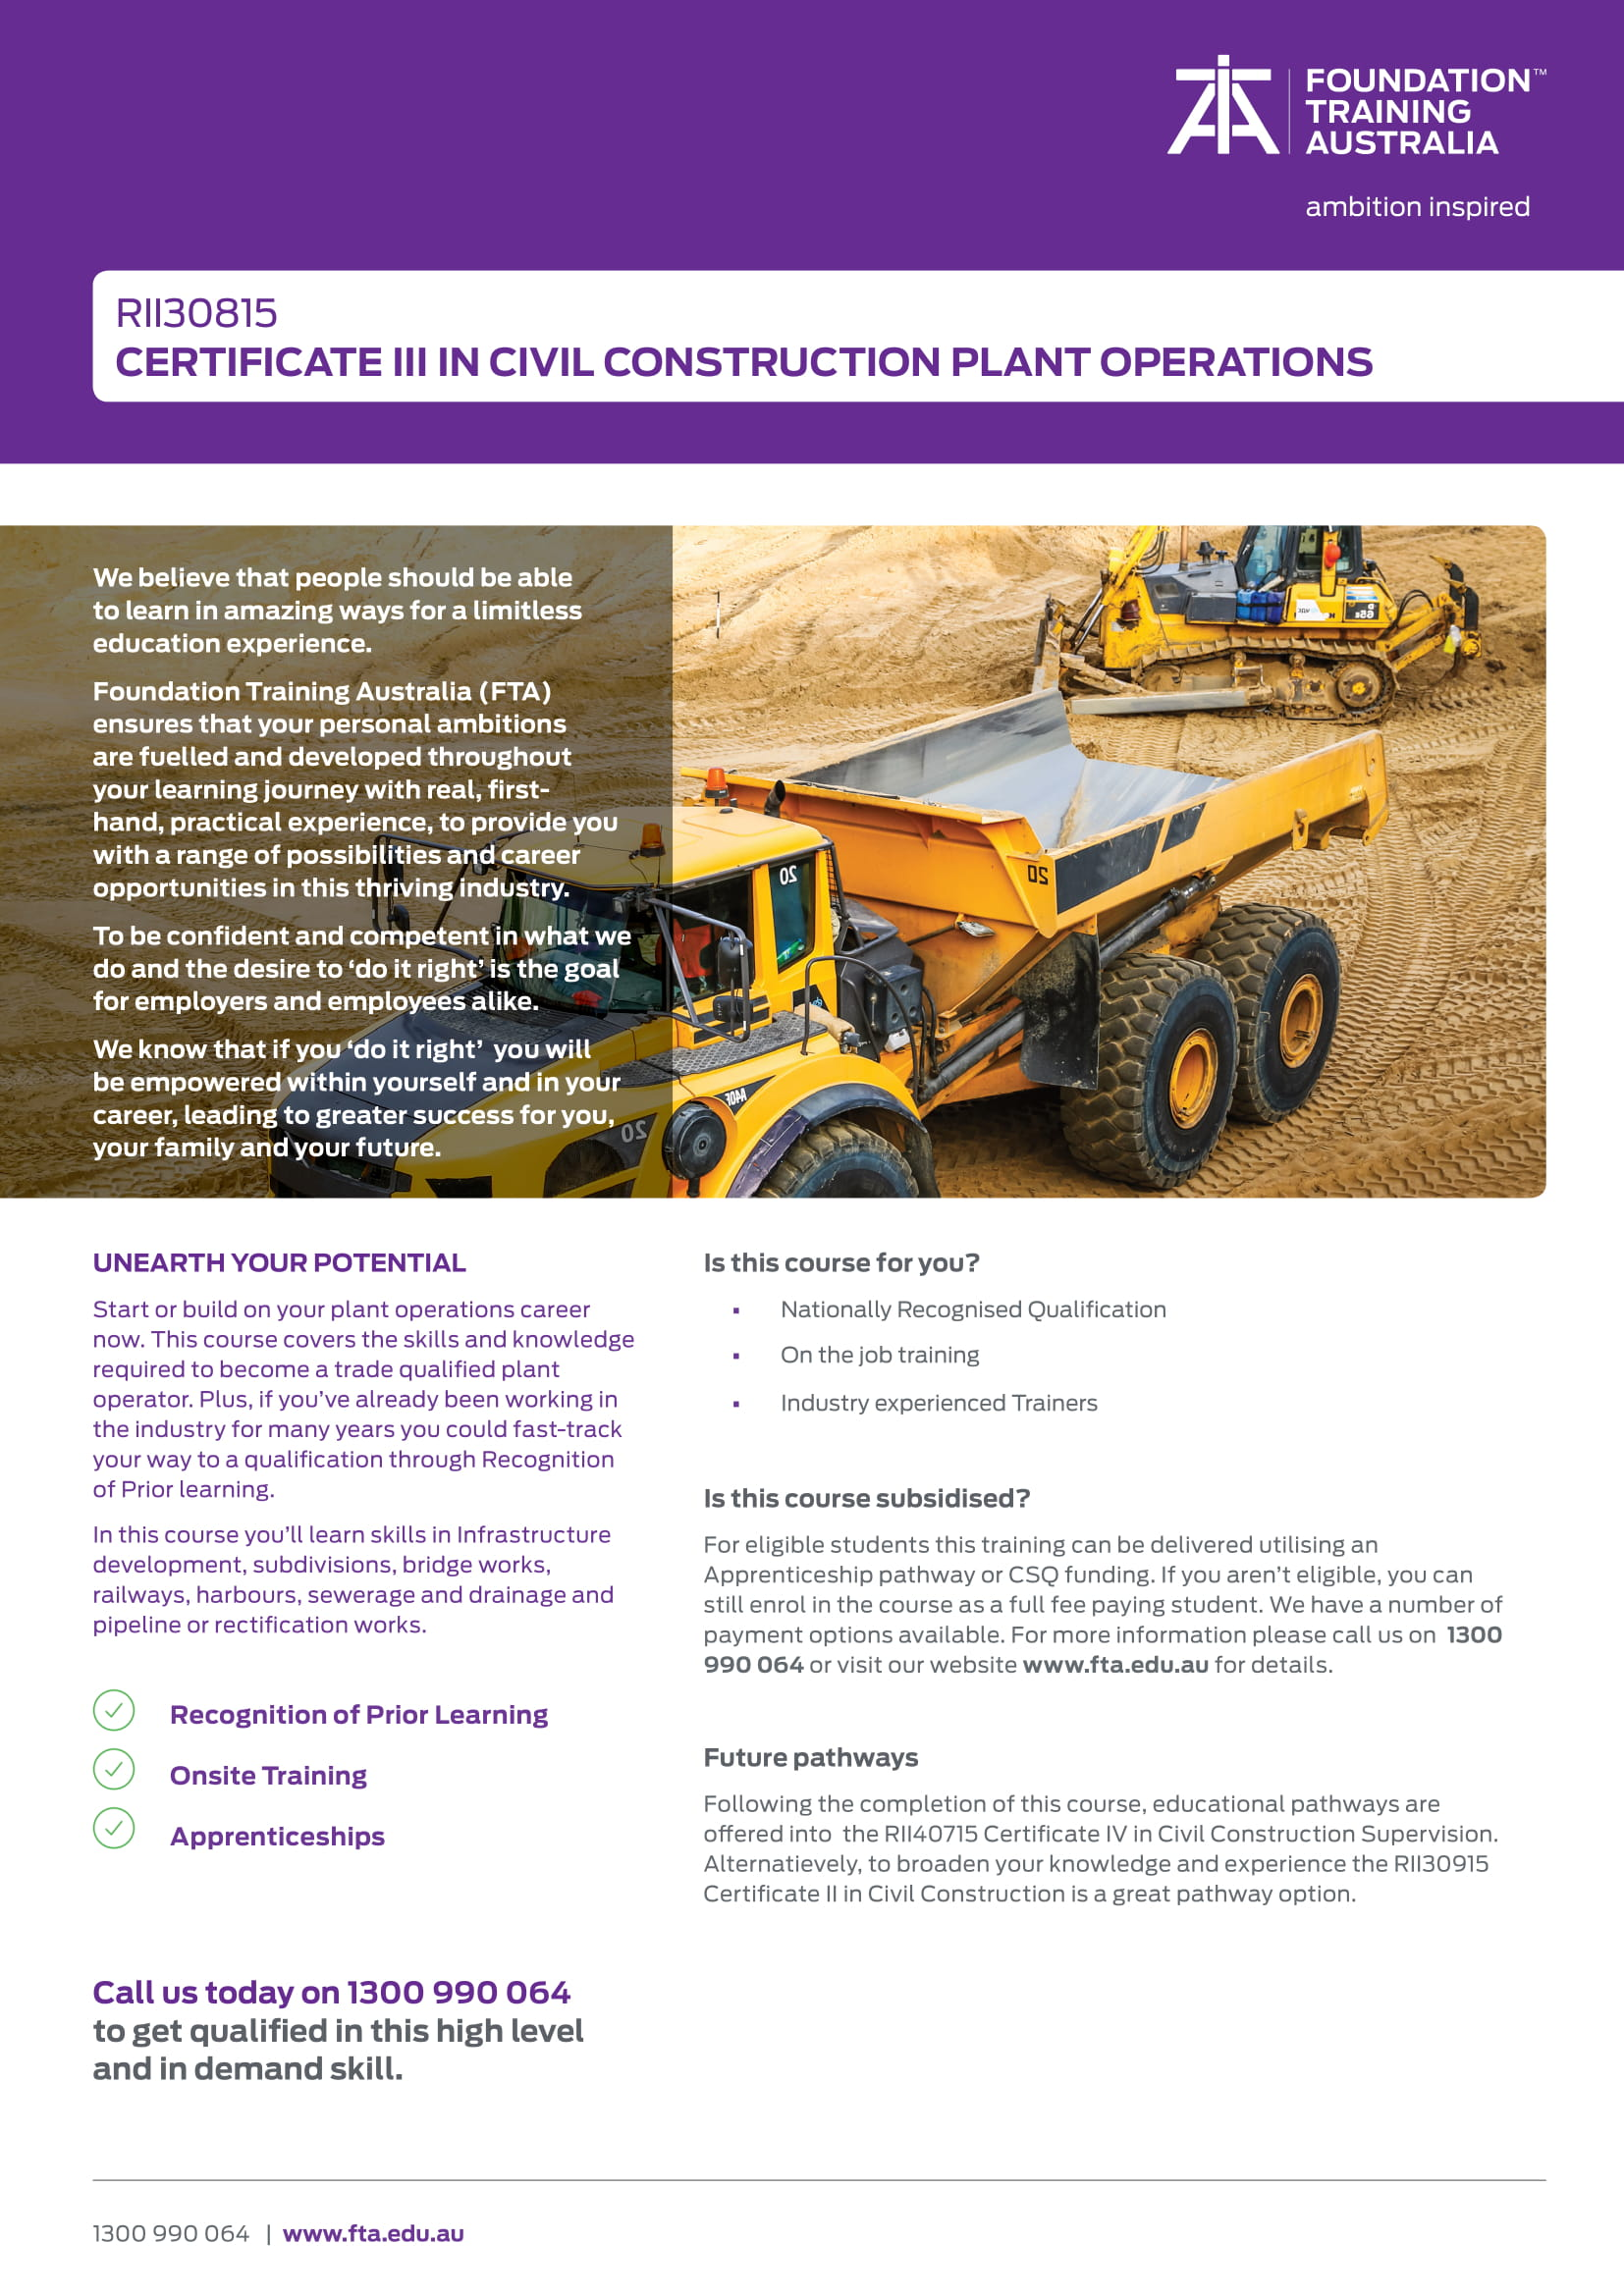 https://www.fta.edu.au/wp-content/uploads/2020/06/TP1.MK_.007-Certificate-III-Civil-Construction-Plant-Ops-Course-Flyer-RII30815-V3-1.jpg